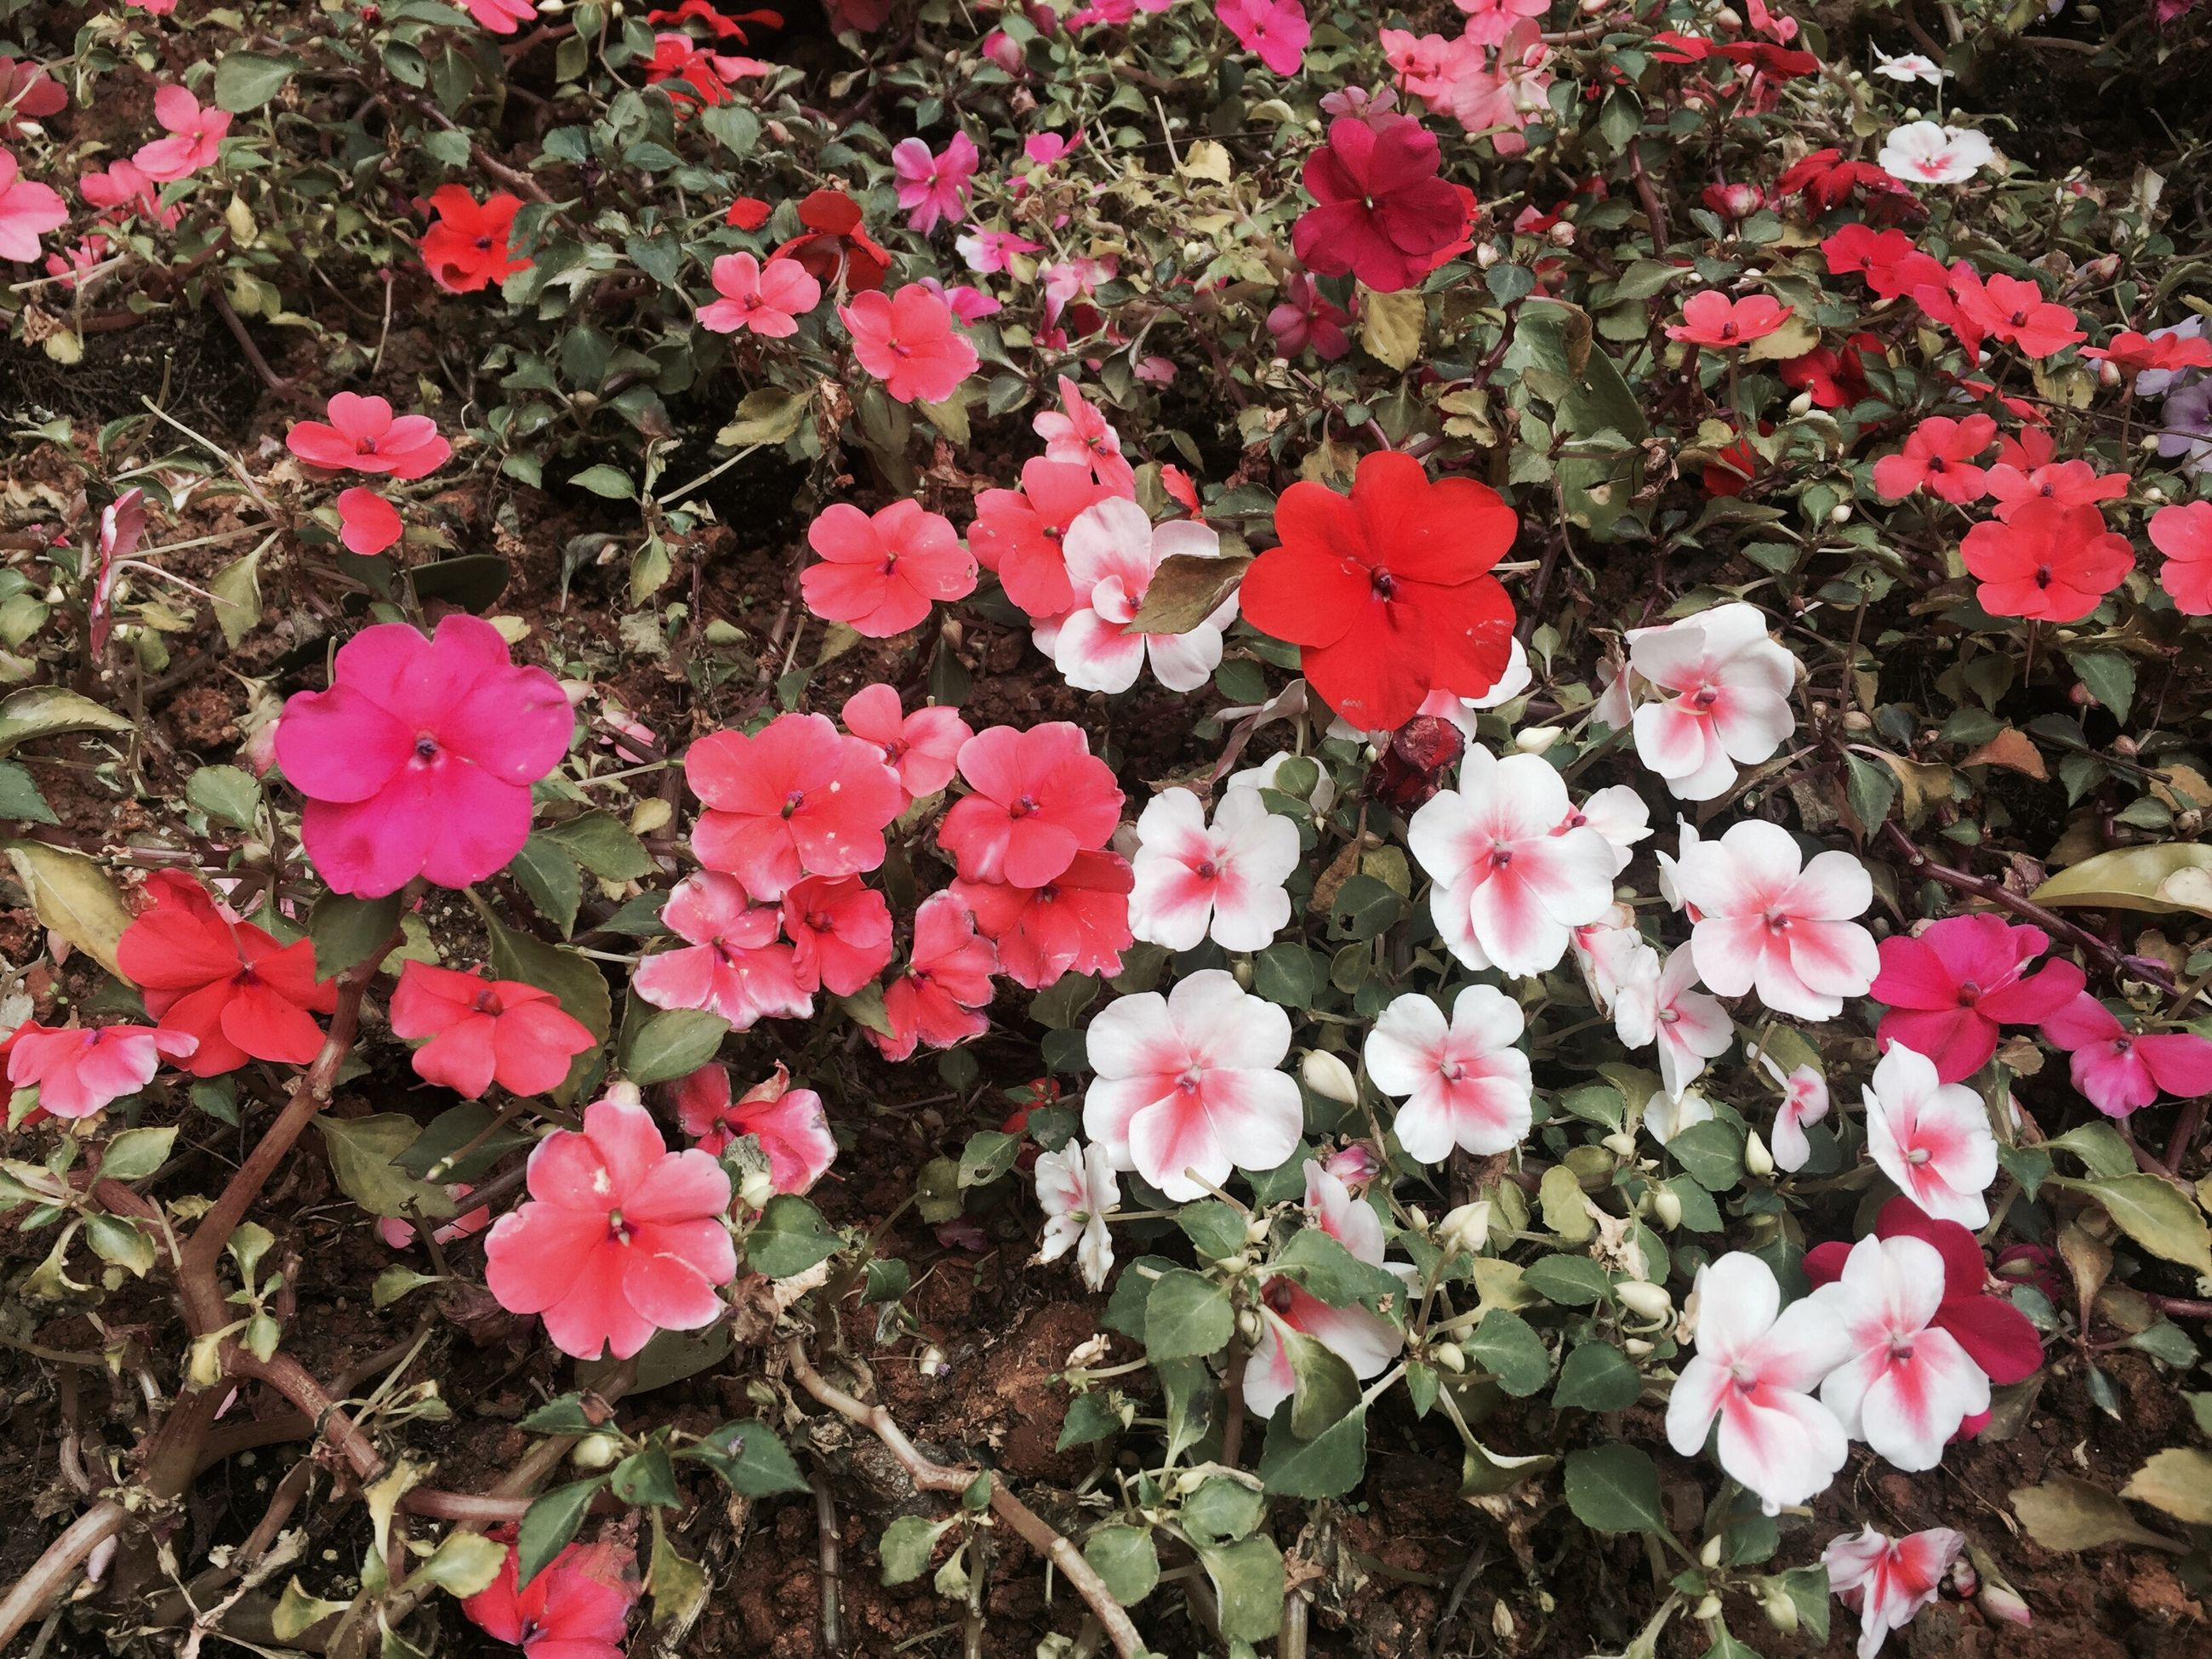 flower, beauty in nature, high angle view, fragility, leaf, growth, nature, freshness, autumn, pink color, petal, season, field, change, plant, red, abundance, tranquility, day, blooming